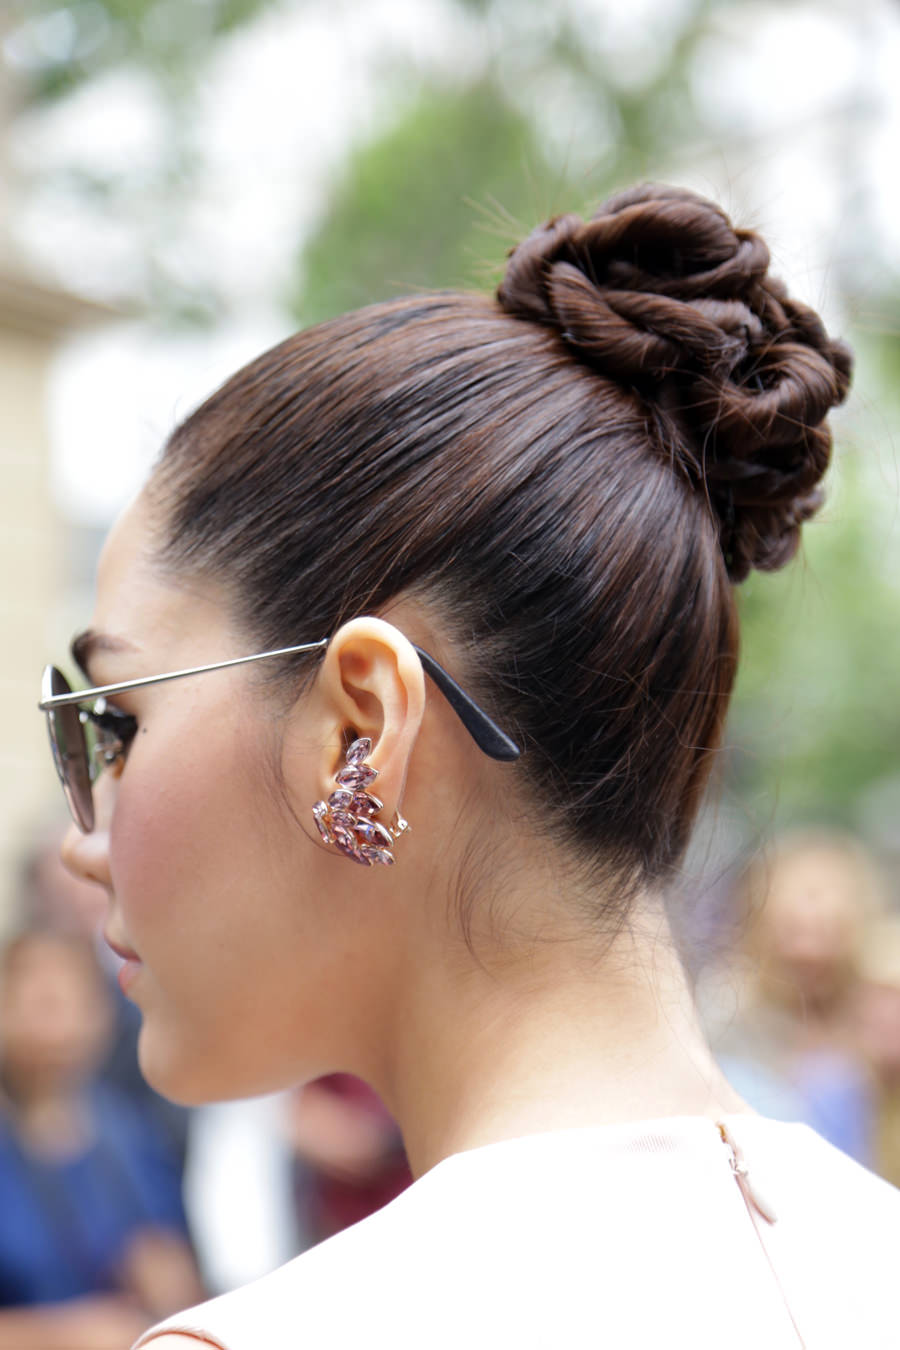 earrings-sunglasses-and-bun